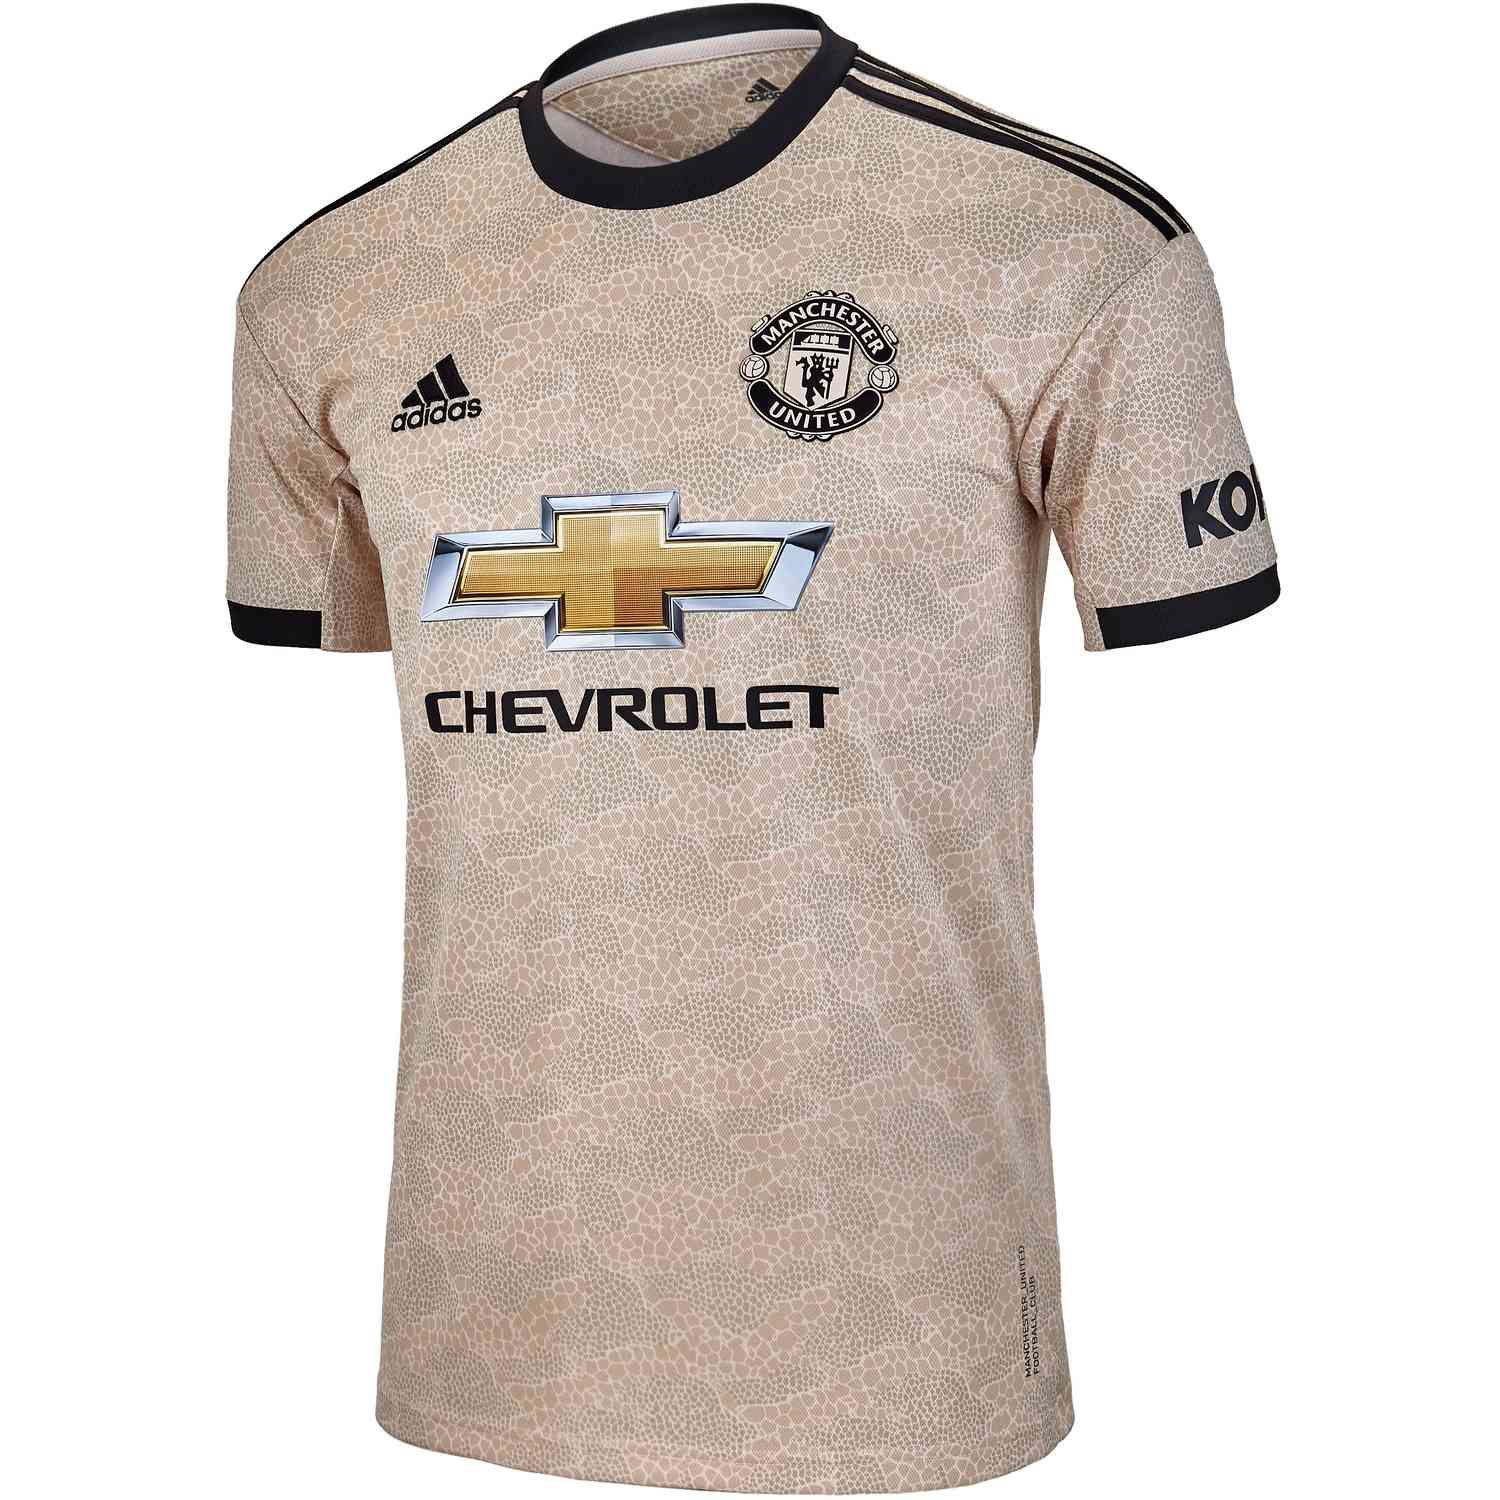 2019 20 adidas manchester united away jersey soccerpro manchester united the unit manchester united football 2019 20 adidas manchester united away